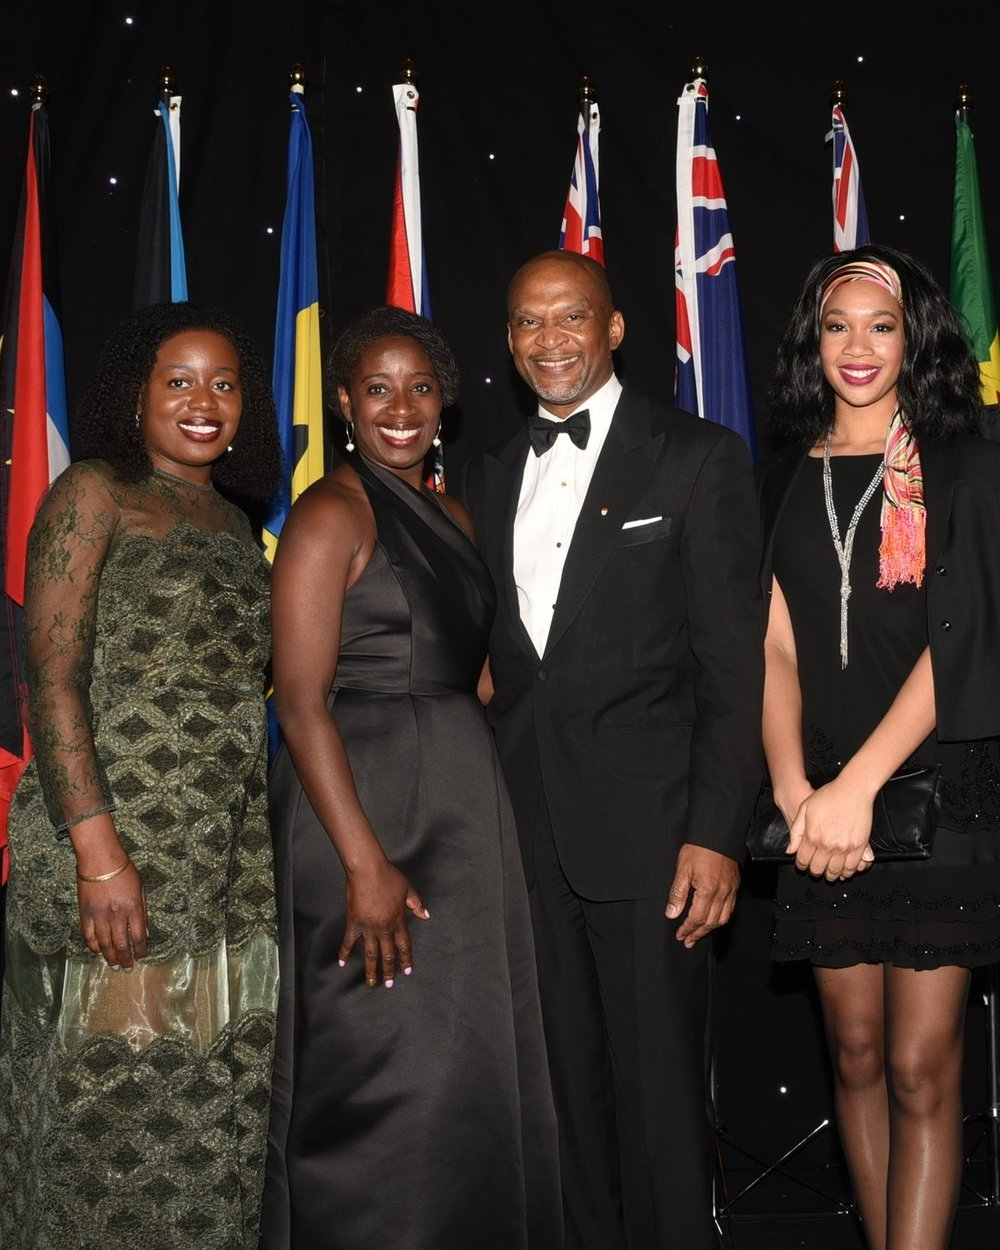 Dr. Lancelot Brown with his daughter Rebecca Brown (r) and sisters Hermia and Erya Abraham (l)